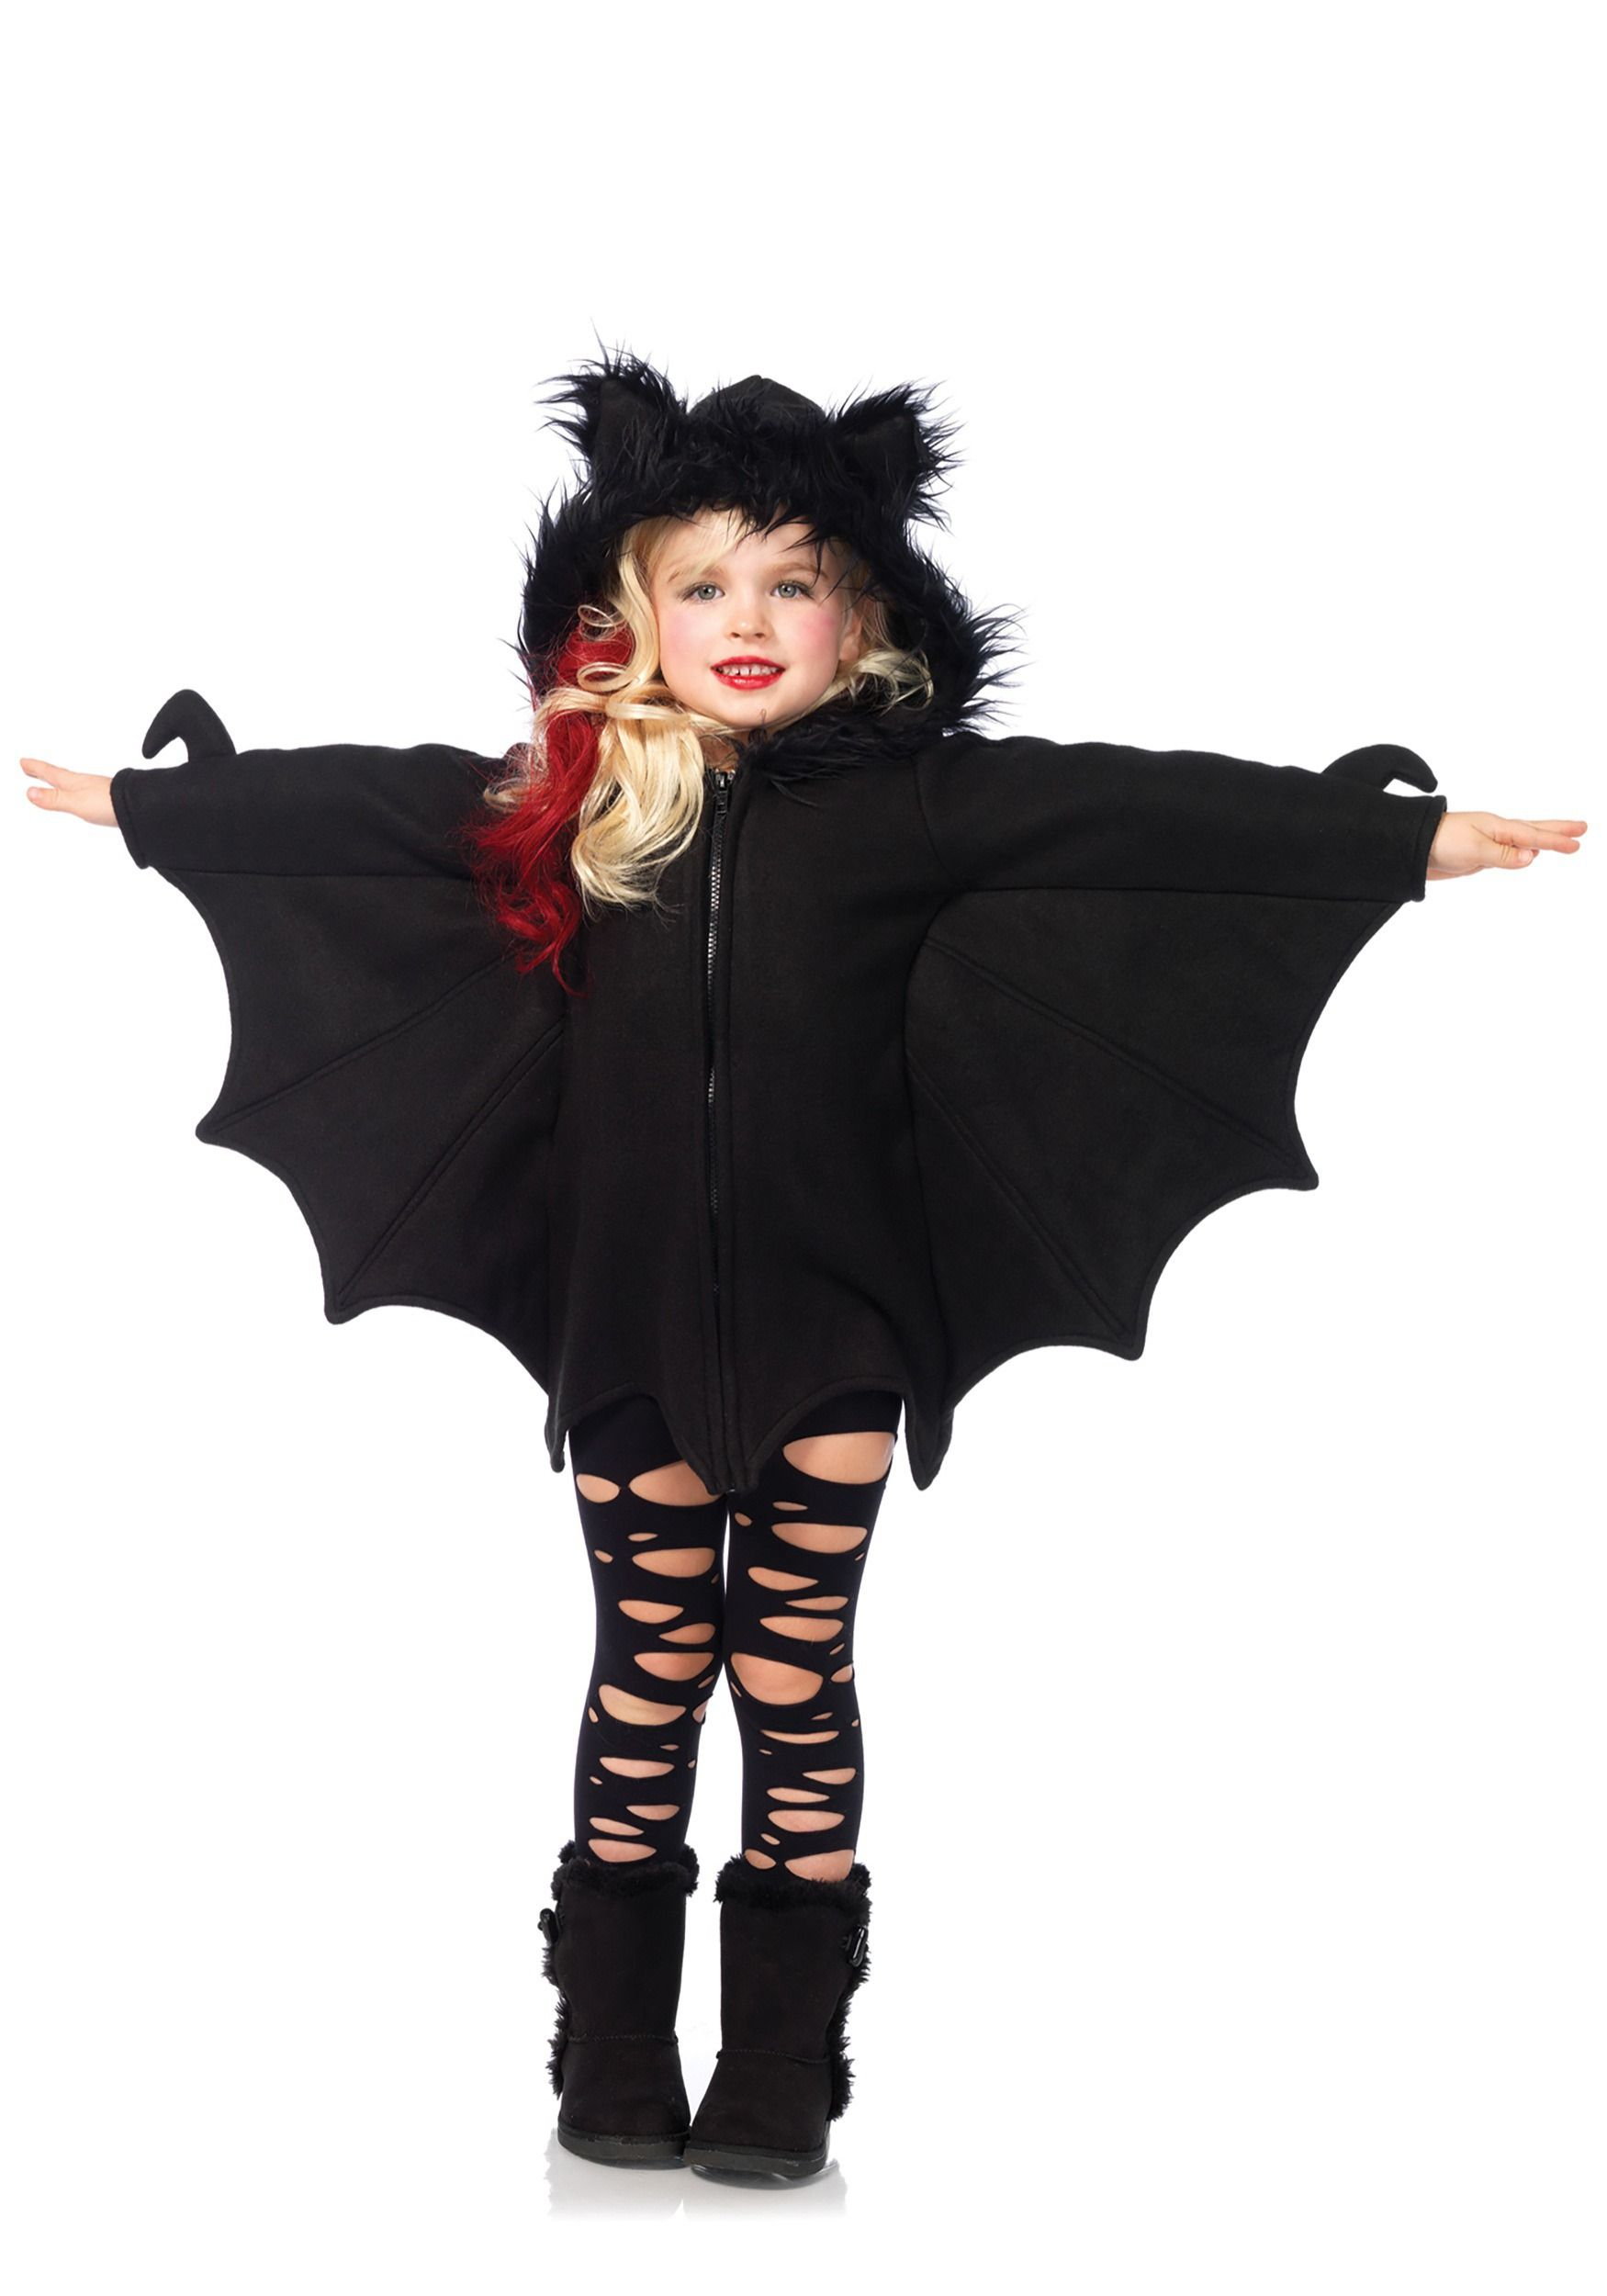 Girls Little Bat Costume Childs Tutu Halloween Fancy Dress Outfit Scary Cute